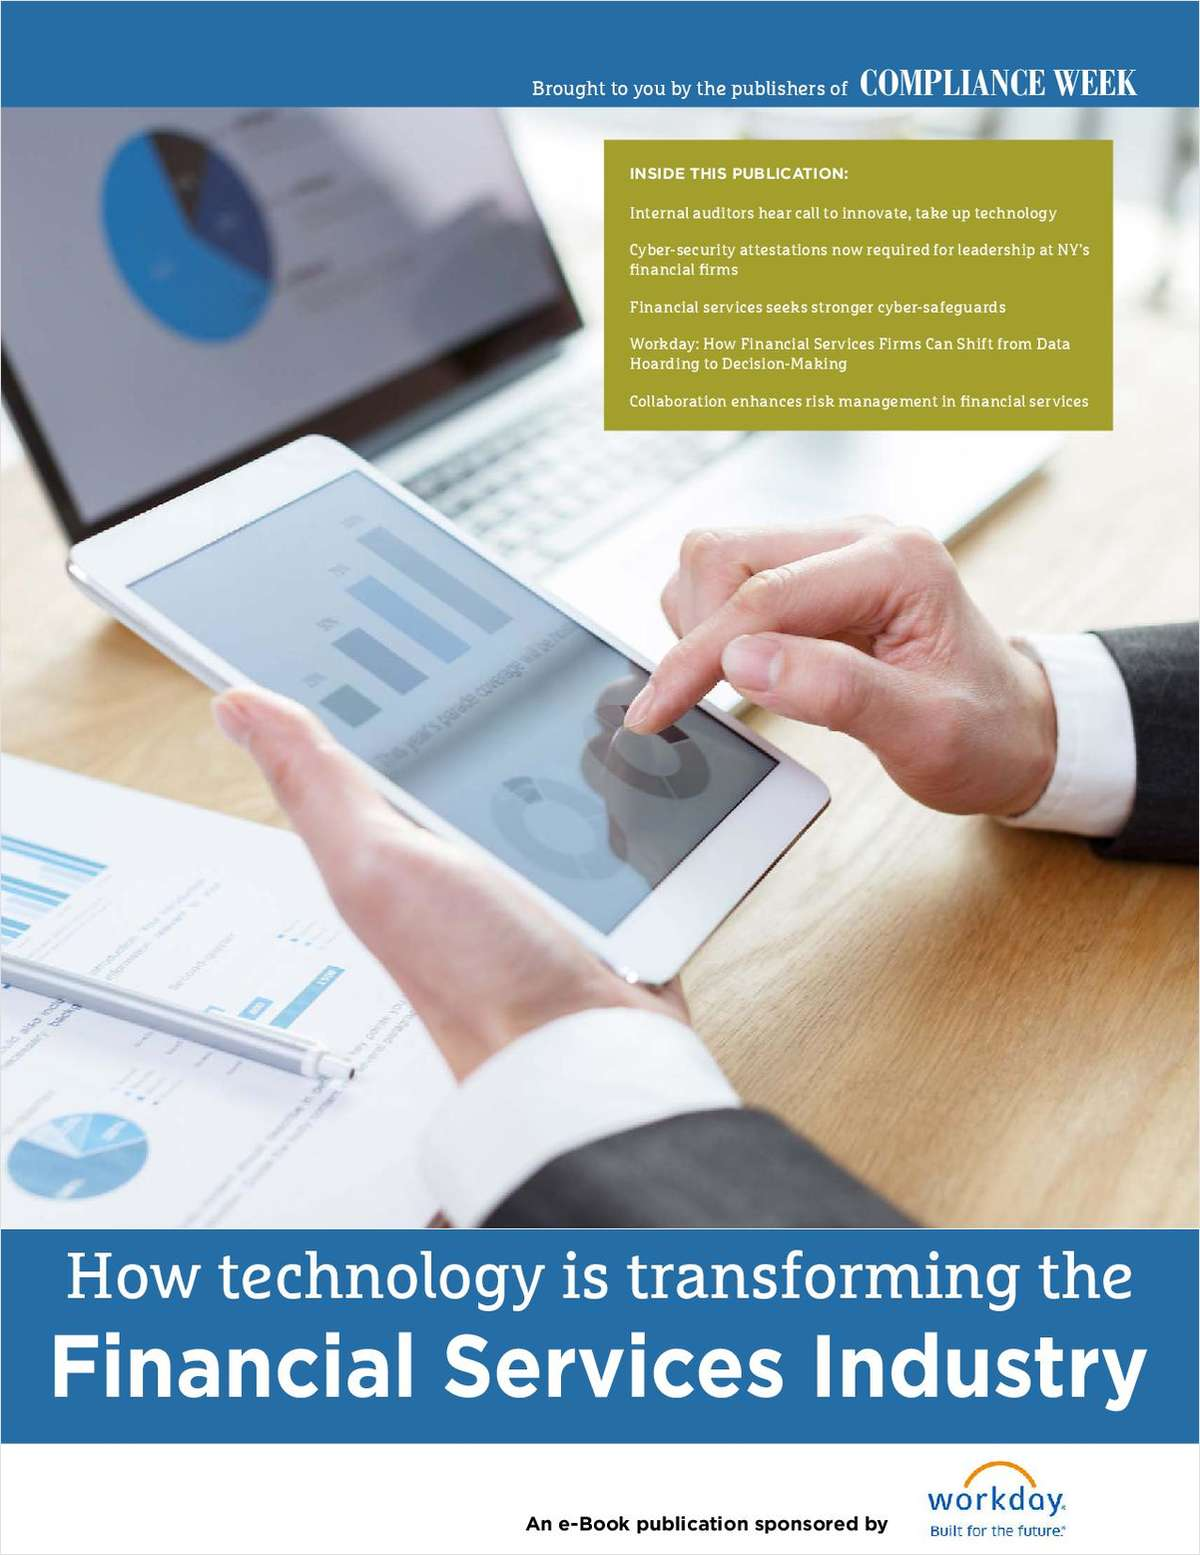 How Technology is Transforming the Financial Services Industry